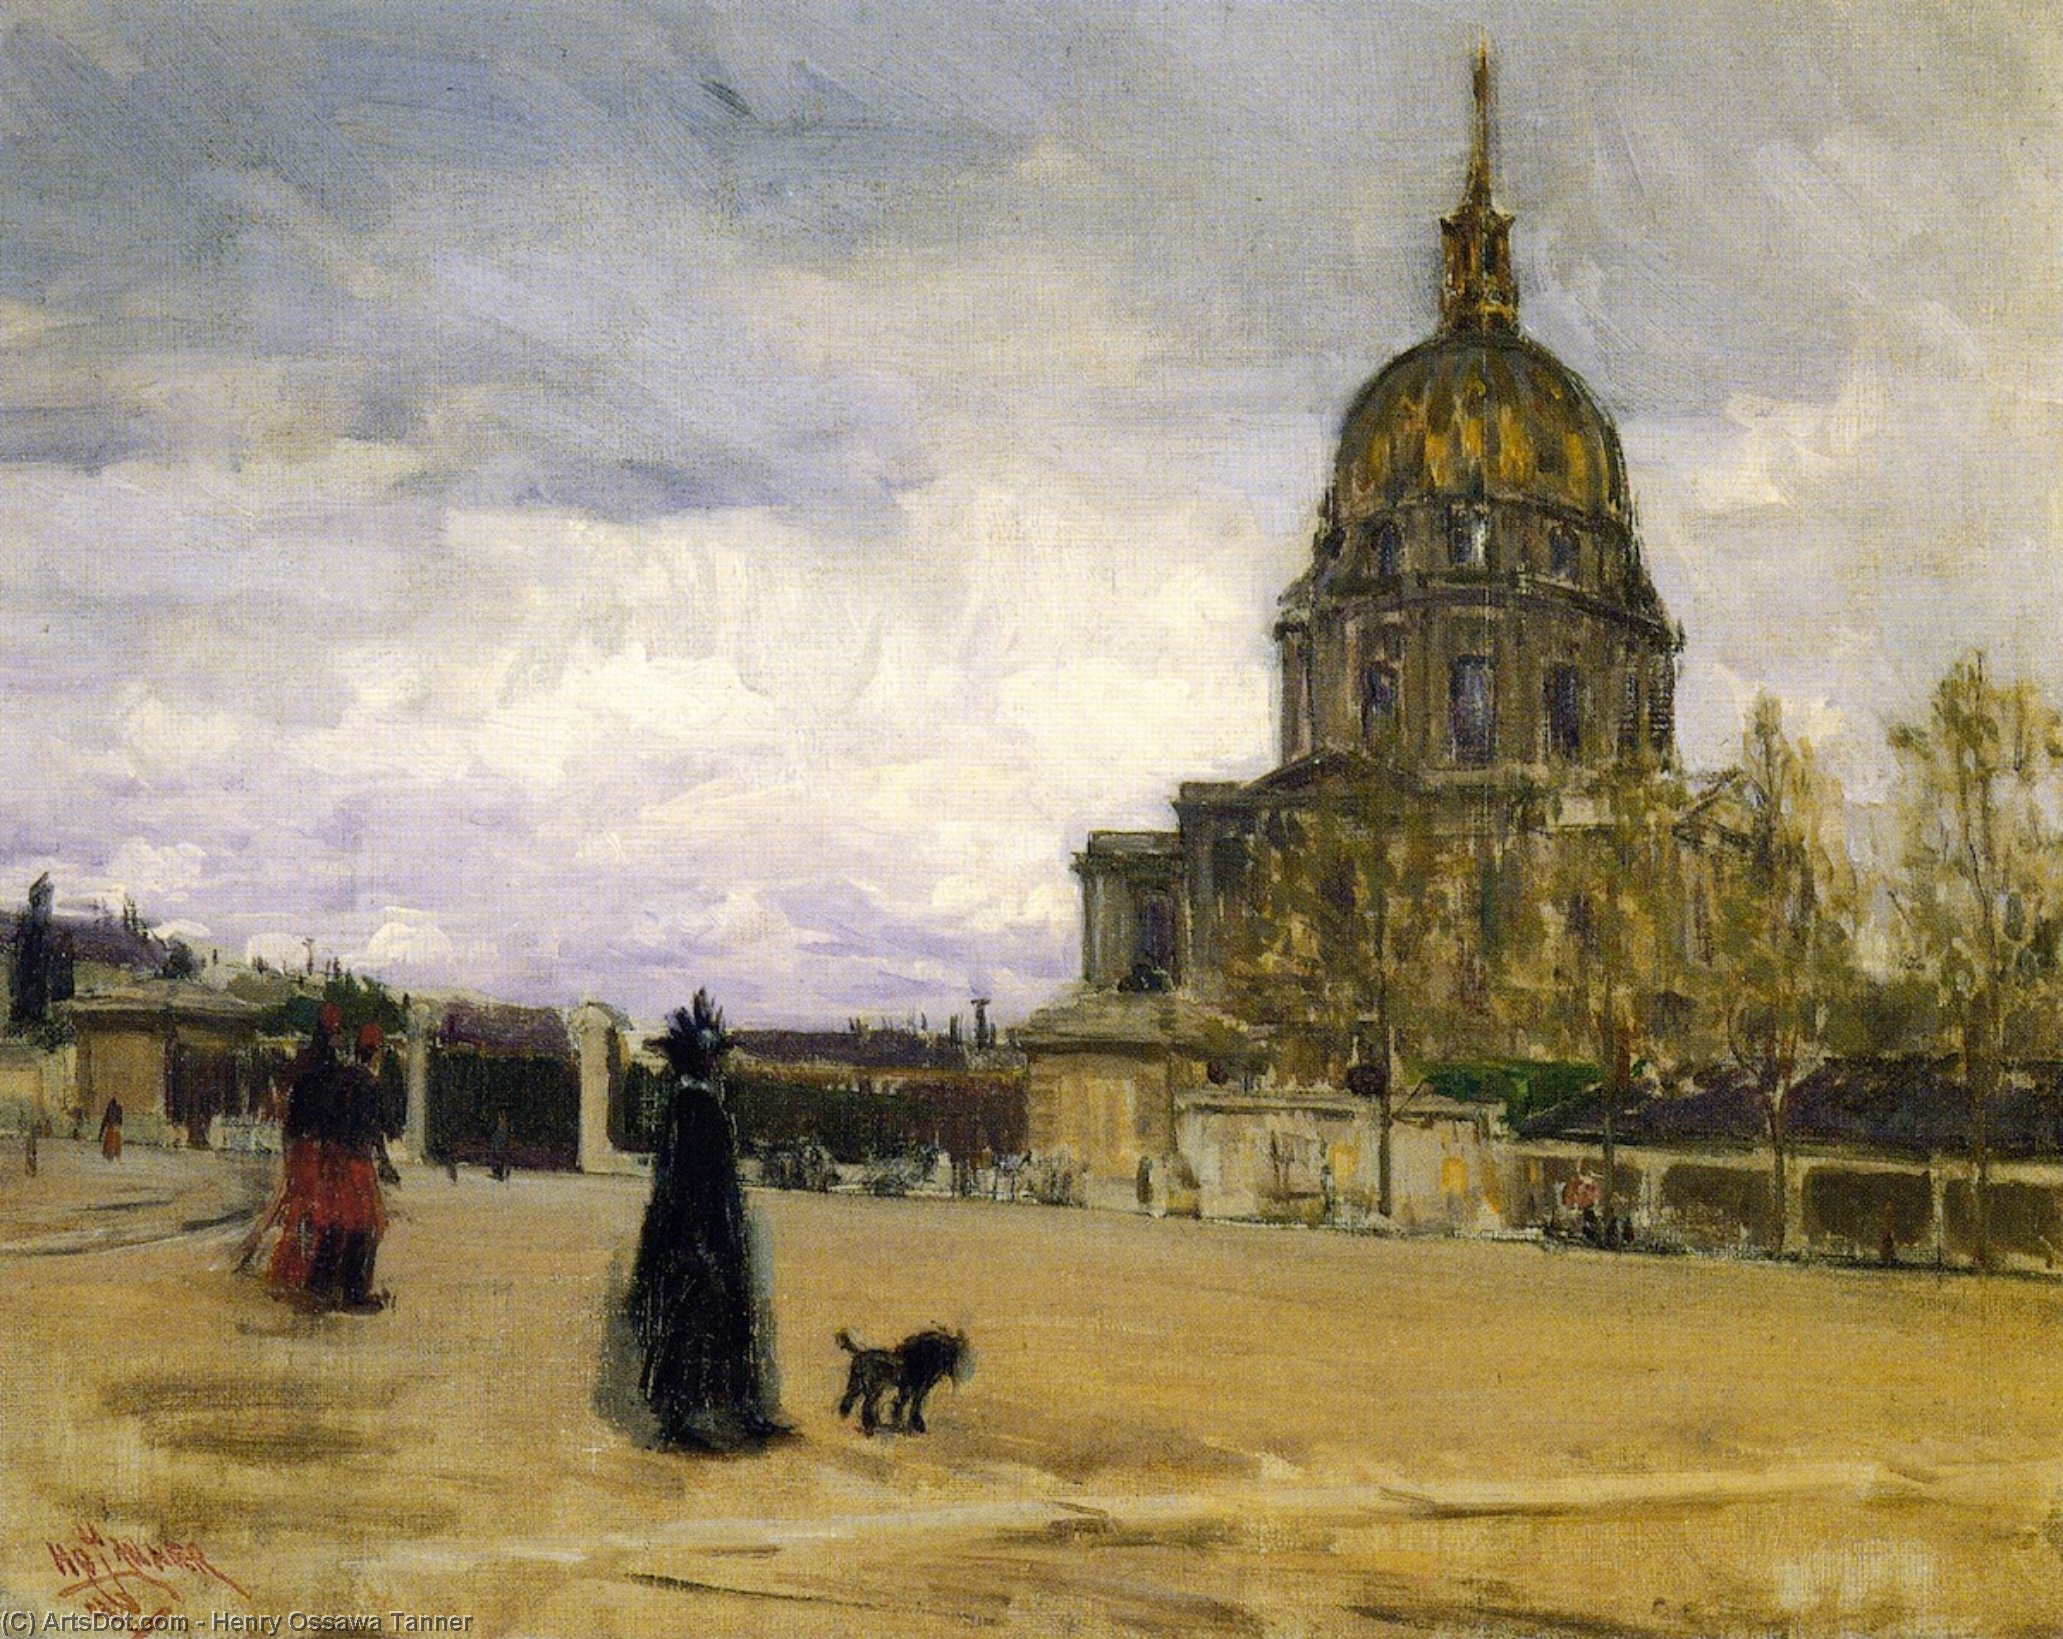 les invalides, huile sur toile de Henry Ossawa Tanner (1859-1937, United States)